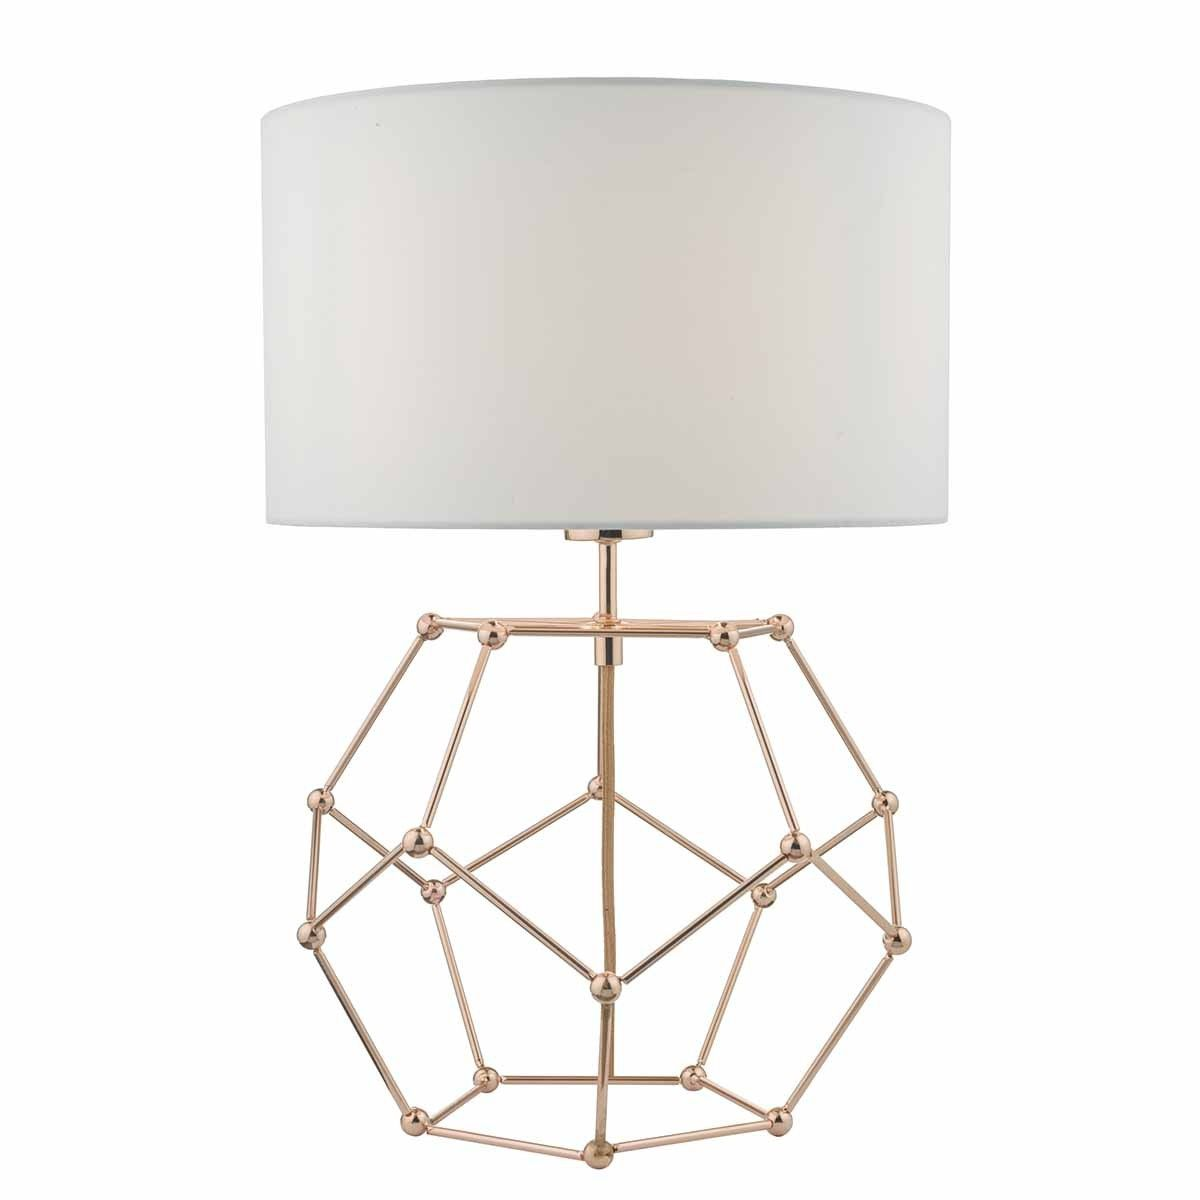 Coen Table Lamp Copper C W White Cotton Shade The Coen Is A Geometric Combination Inspired By The Structure Of Molecul Copper Table Lamp Table Lamp Geometric Lamp